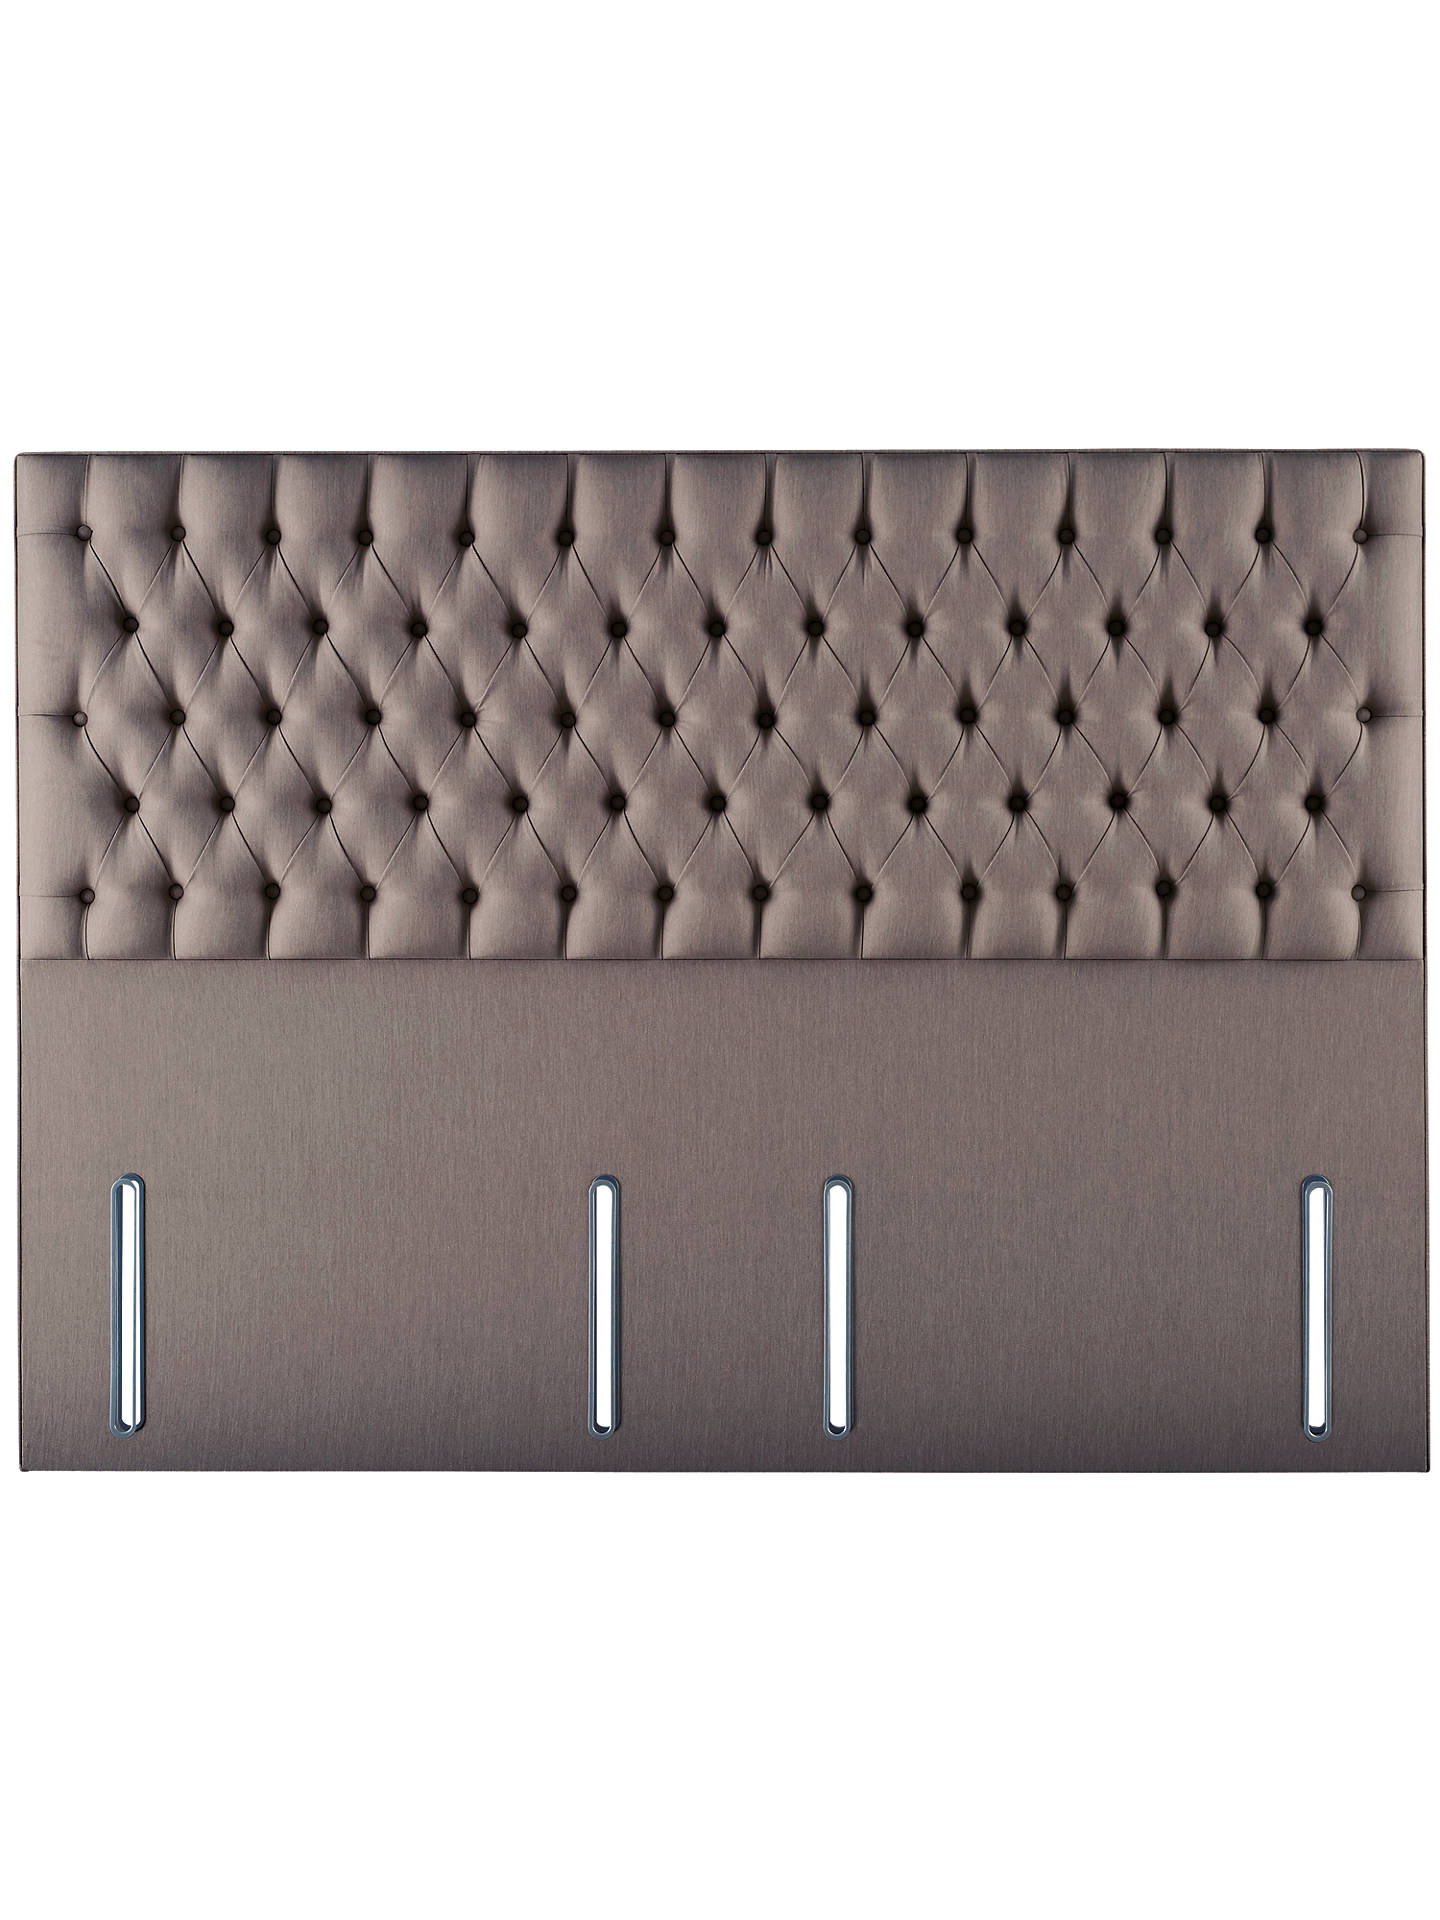 new styles 419ab d8dd1 Hypnos Eleanor Full Depth Headboard, King Size, Imperio Grey